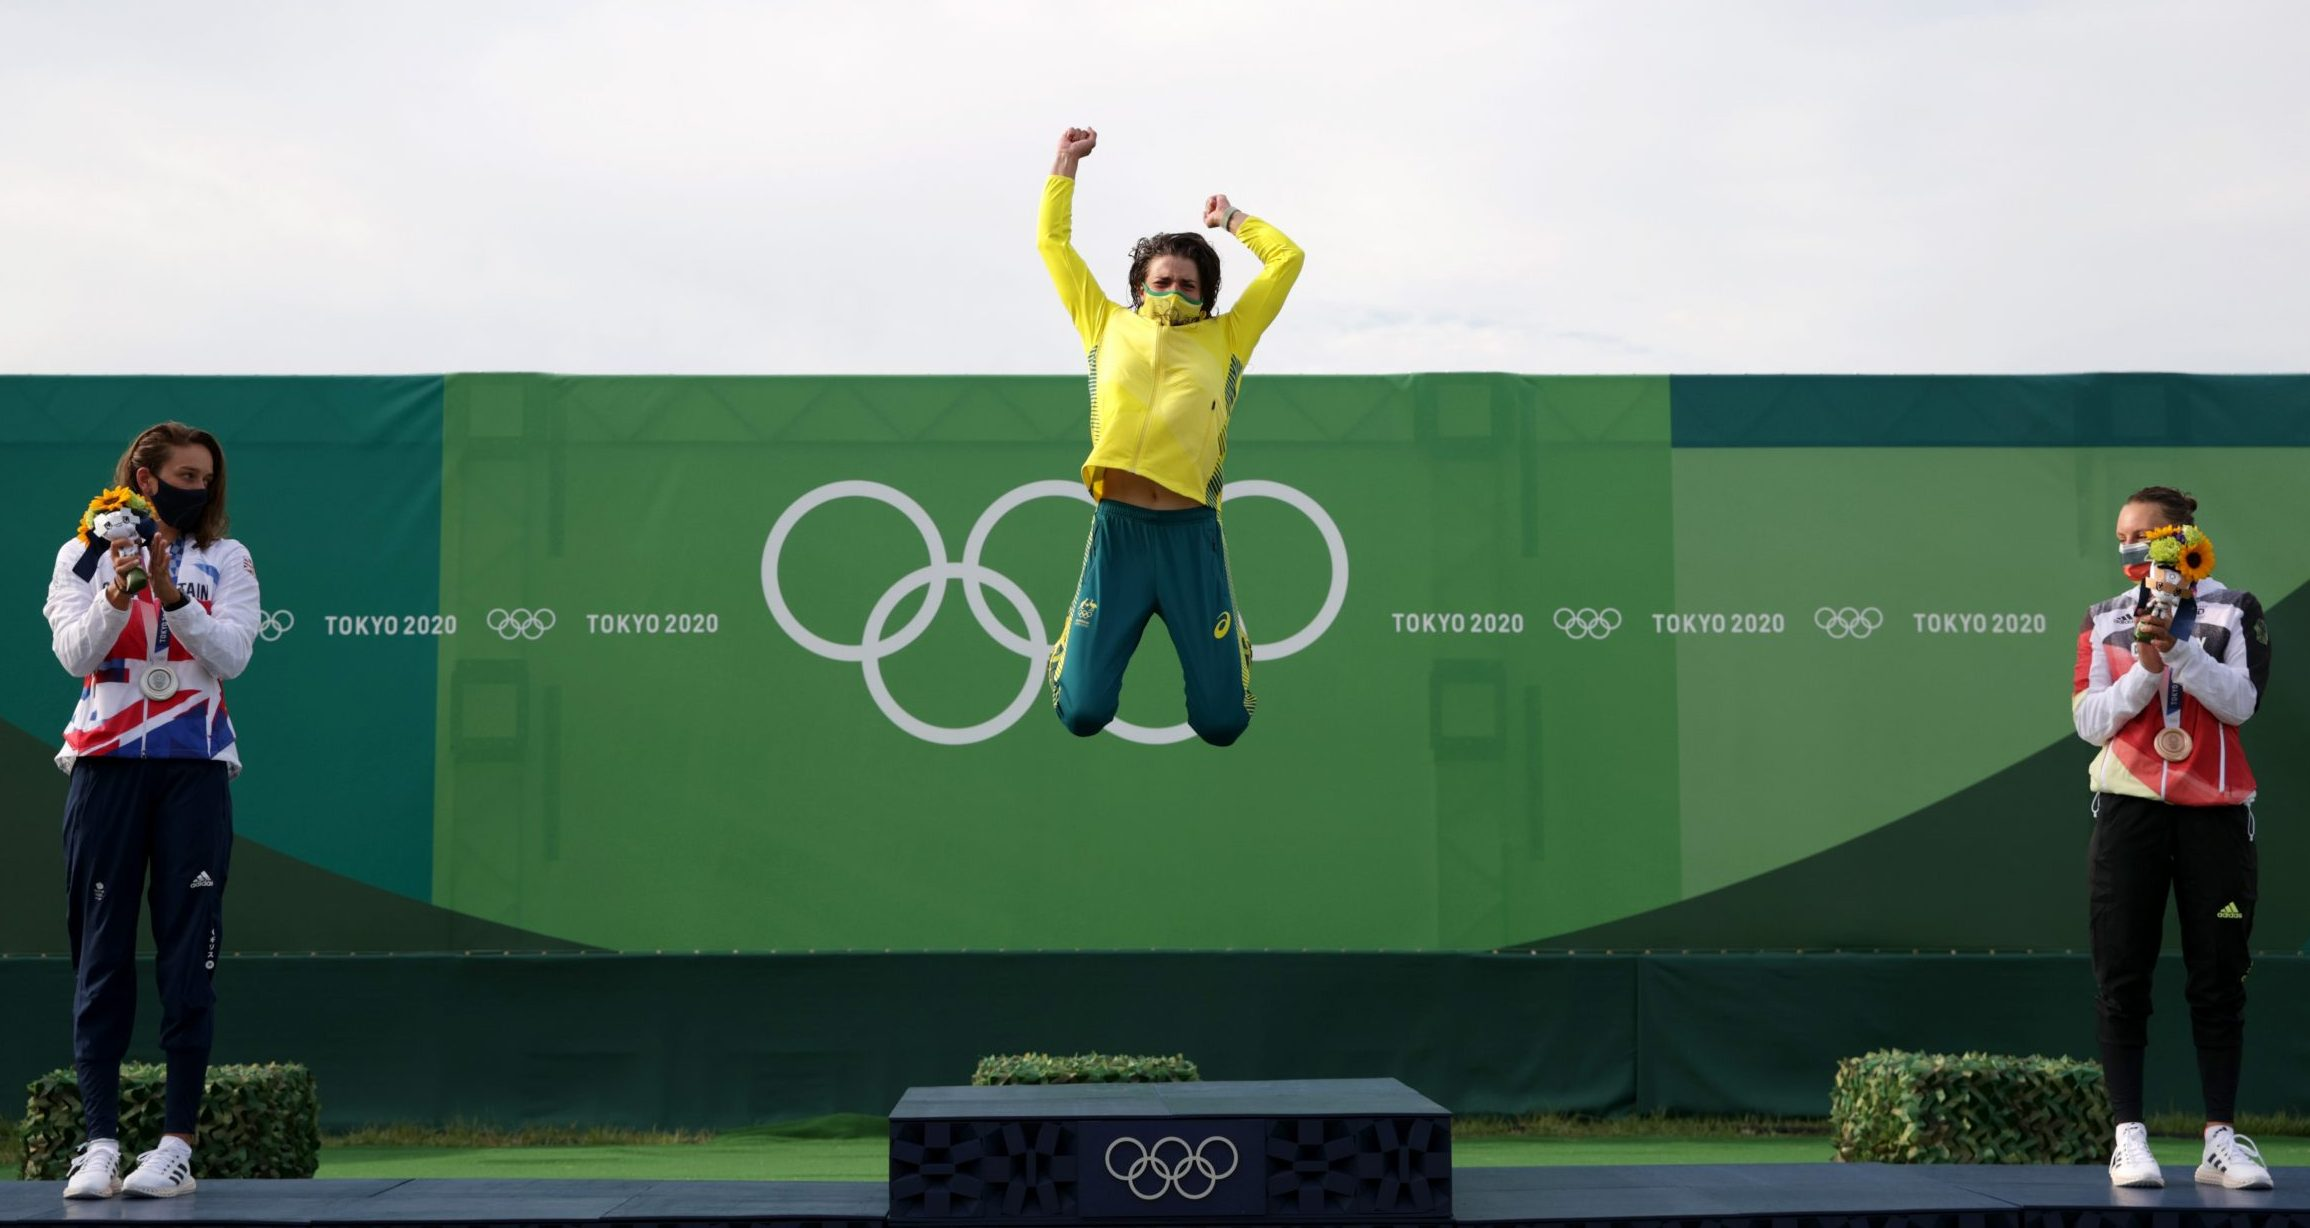 Relive the Games with our Campaign Tokyo Olympic Highlights Image